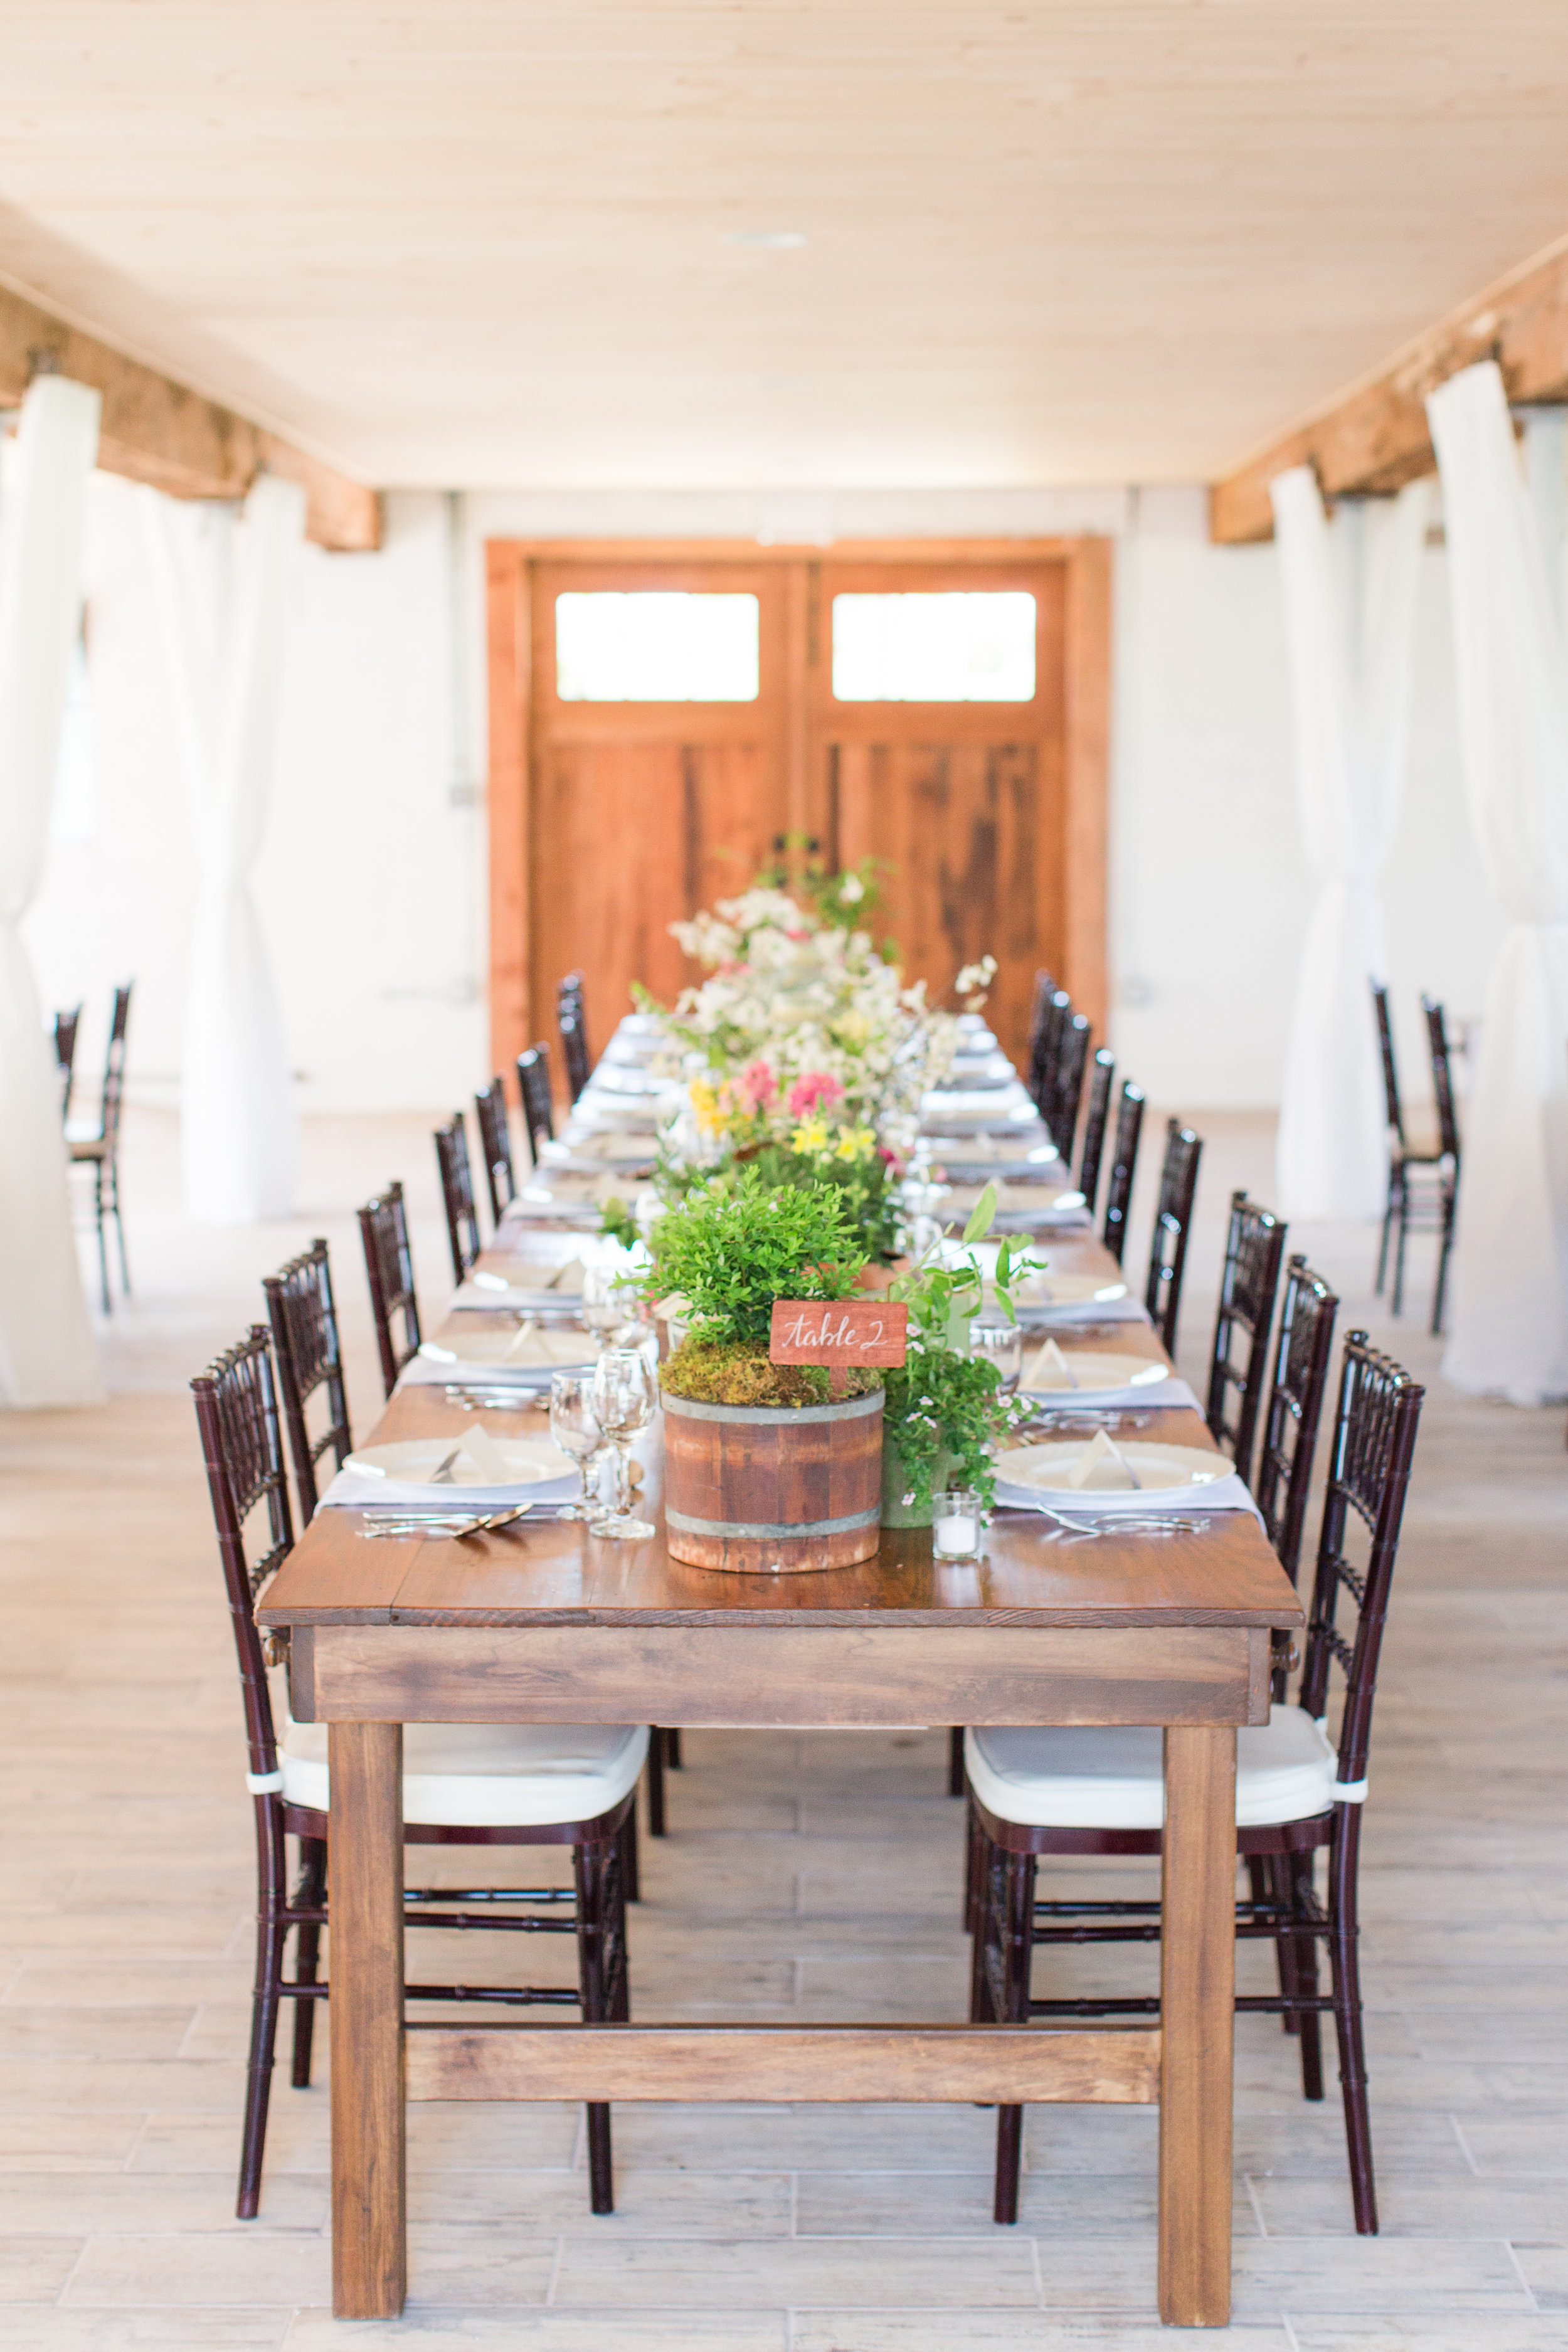 I love designing long tables! The inspiration for this table came from an English potting shed and featured a collection of potted plants, cut flowers, boxwood and vintage books on gardening from my library.